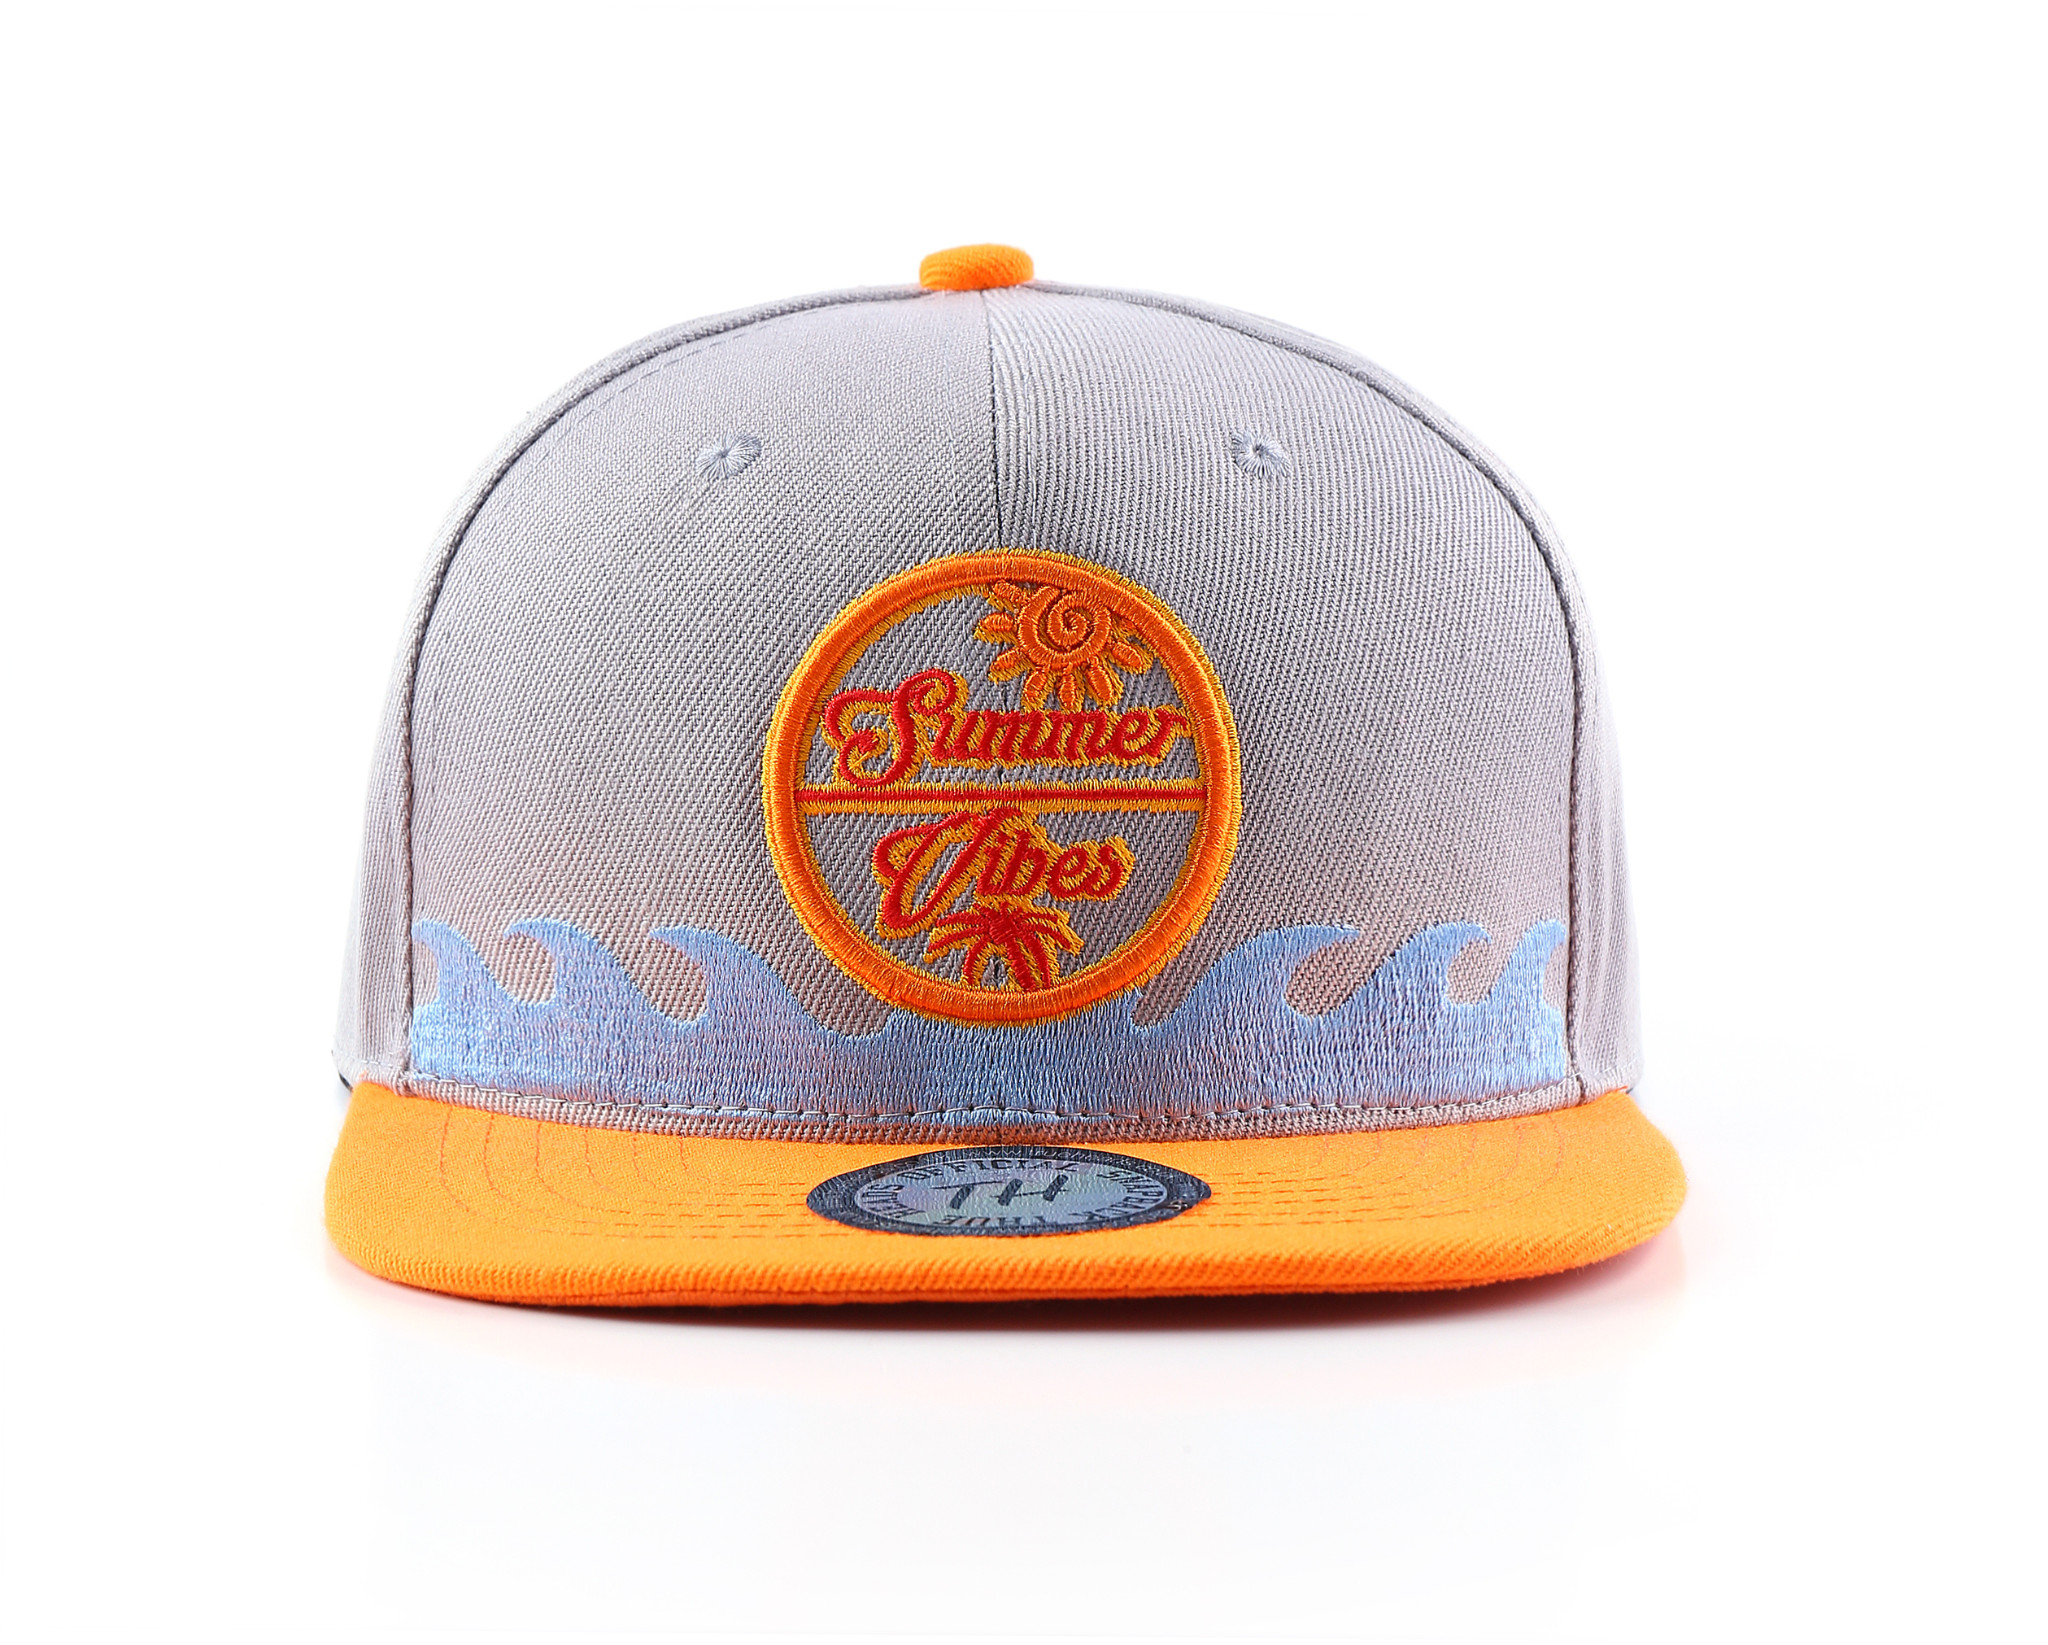 Details about True Heads Summer Vibes Snapback Baseball Cap 7f06407ab9c